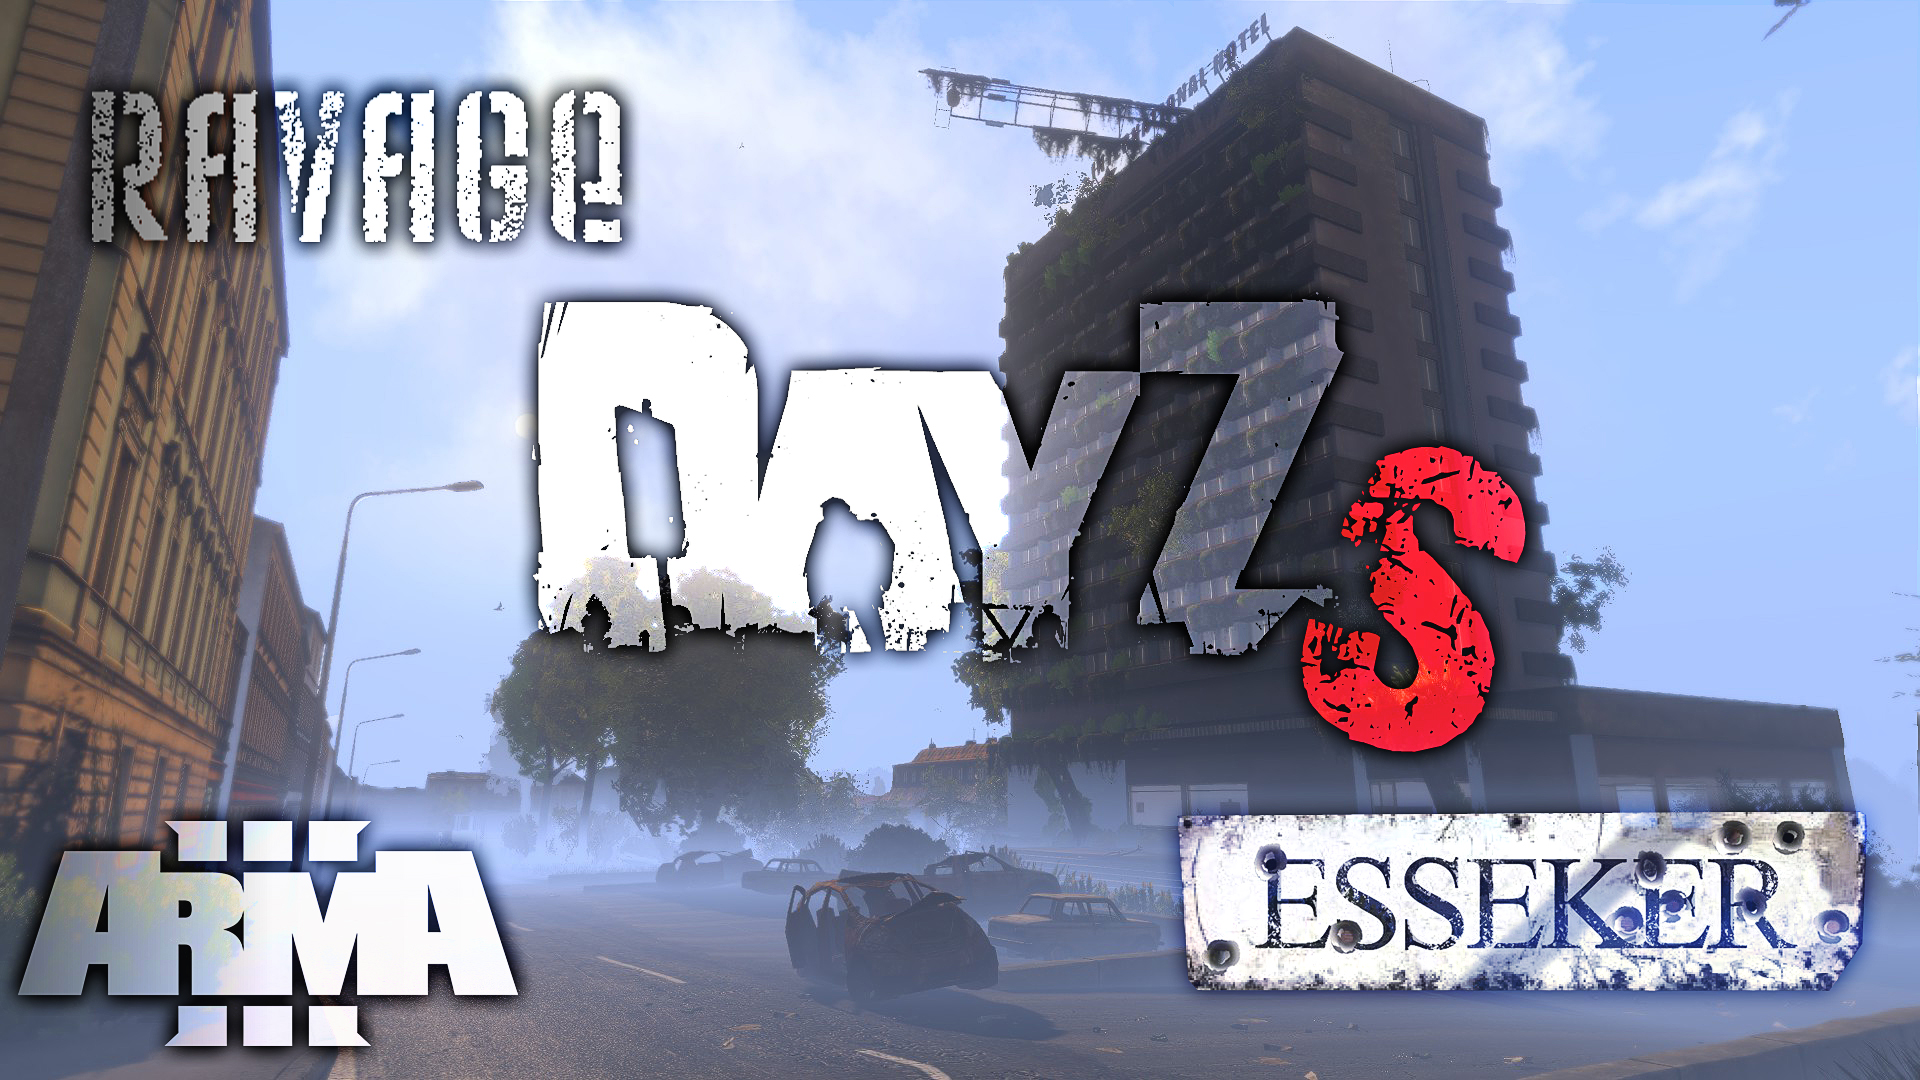 [SP] Ravage  DayZs on Esseker [UPDATED]